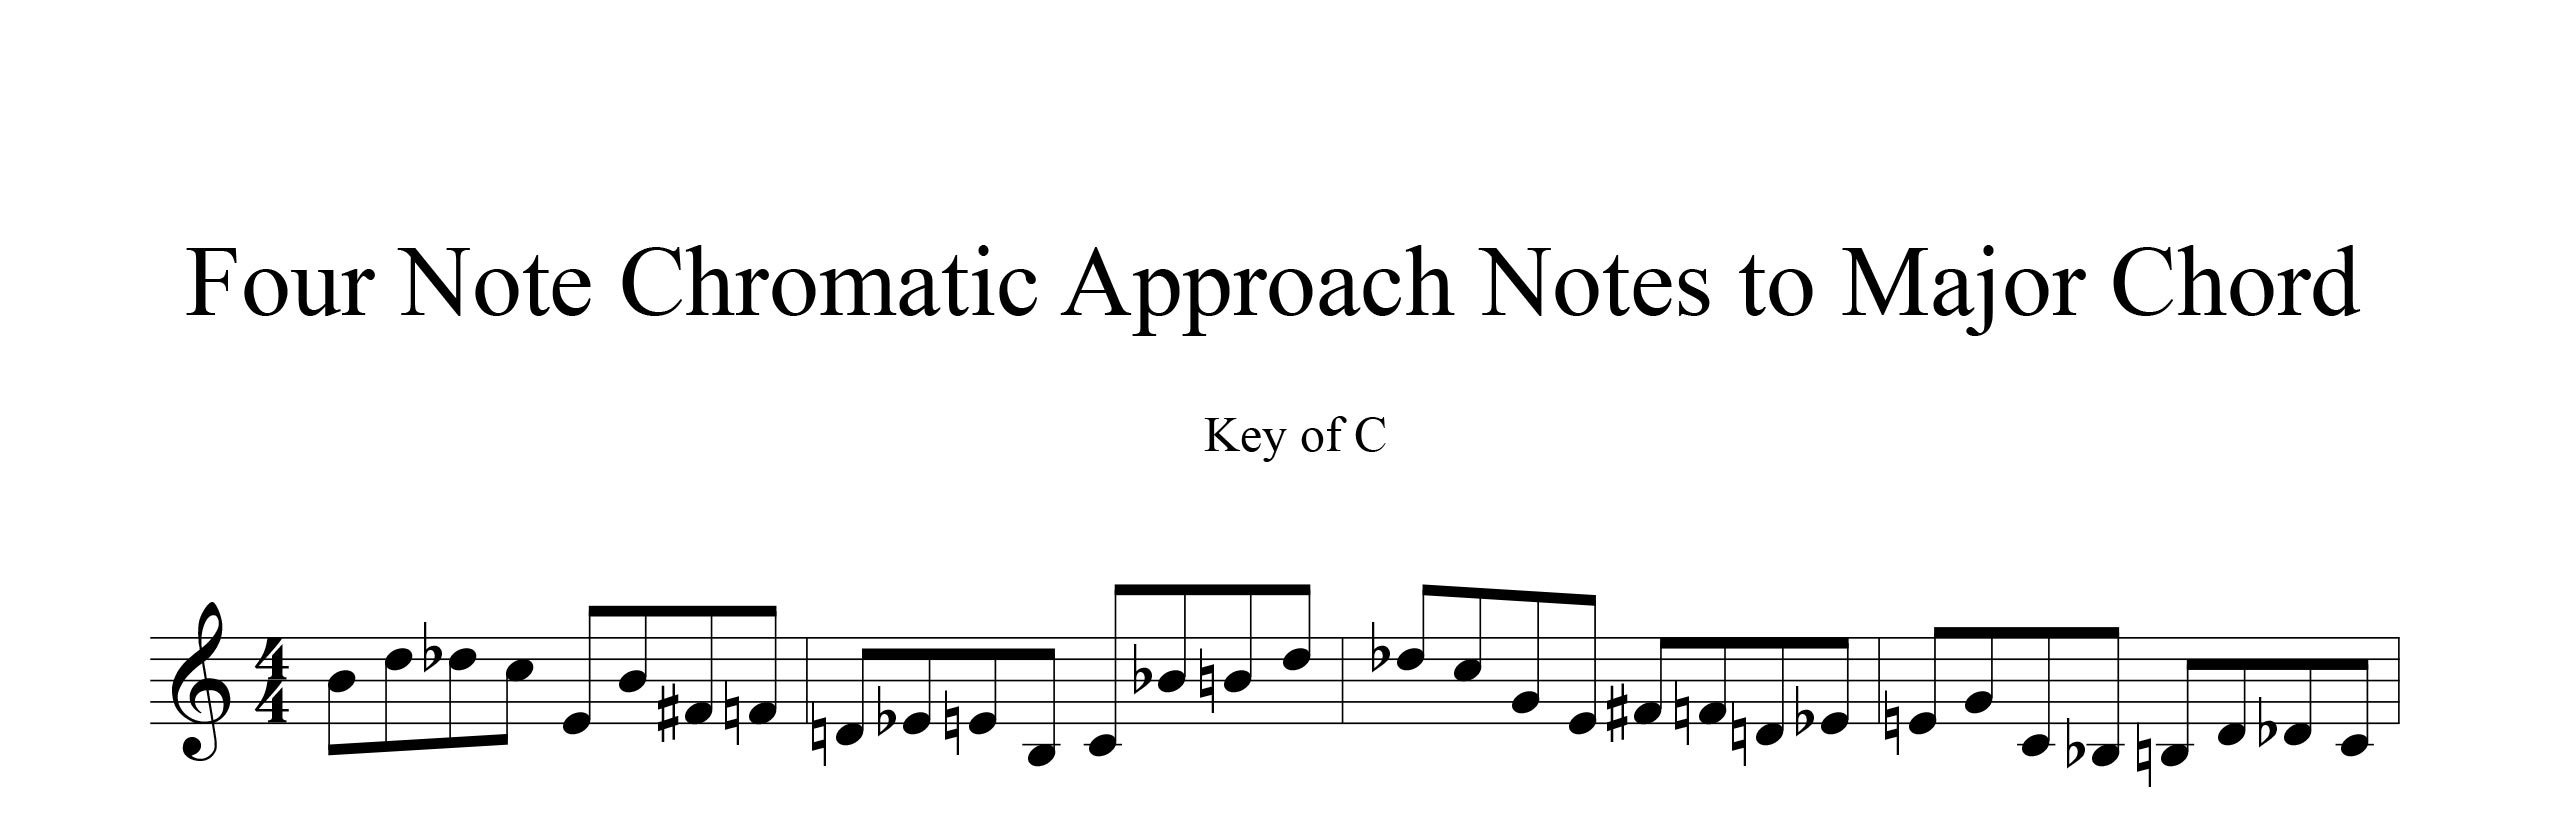 Melodic-Modulation-4-note-groups-Example-three-approach-notes-by-bruce-arnold-for-muse-eek-publishing-inc.